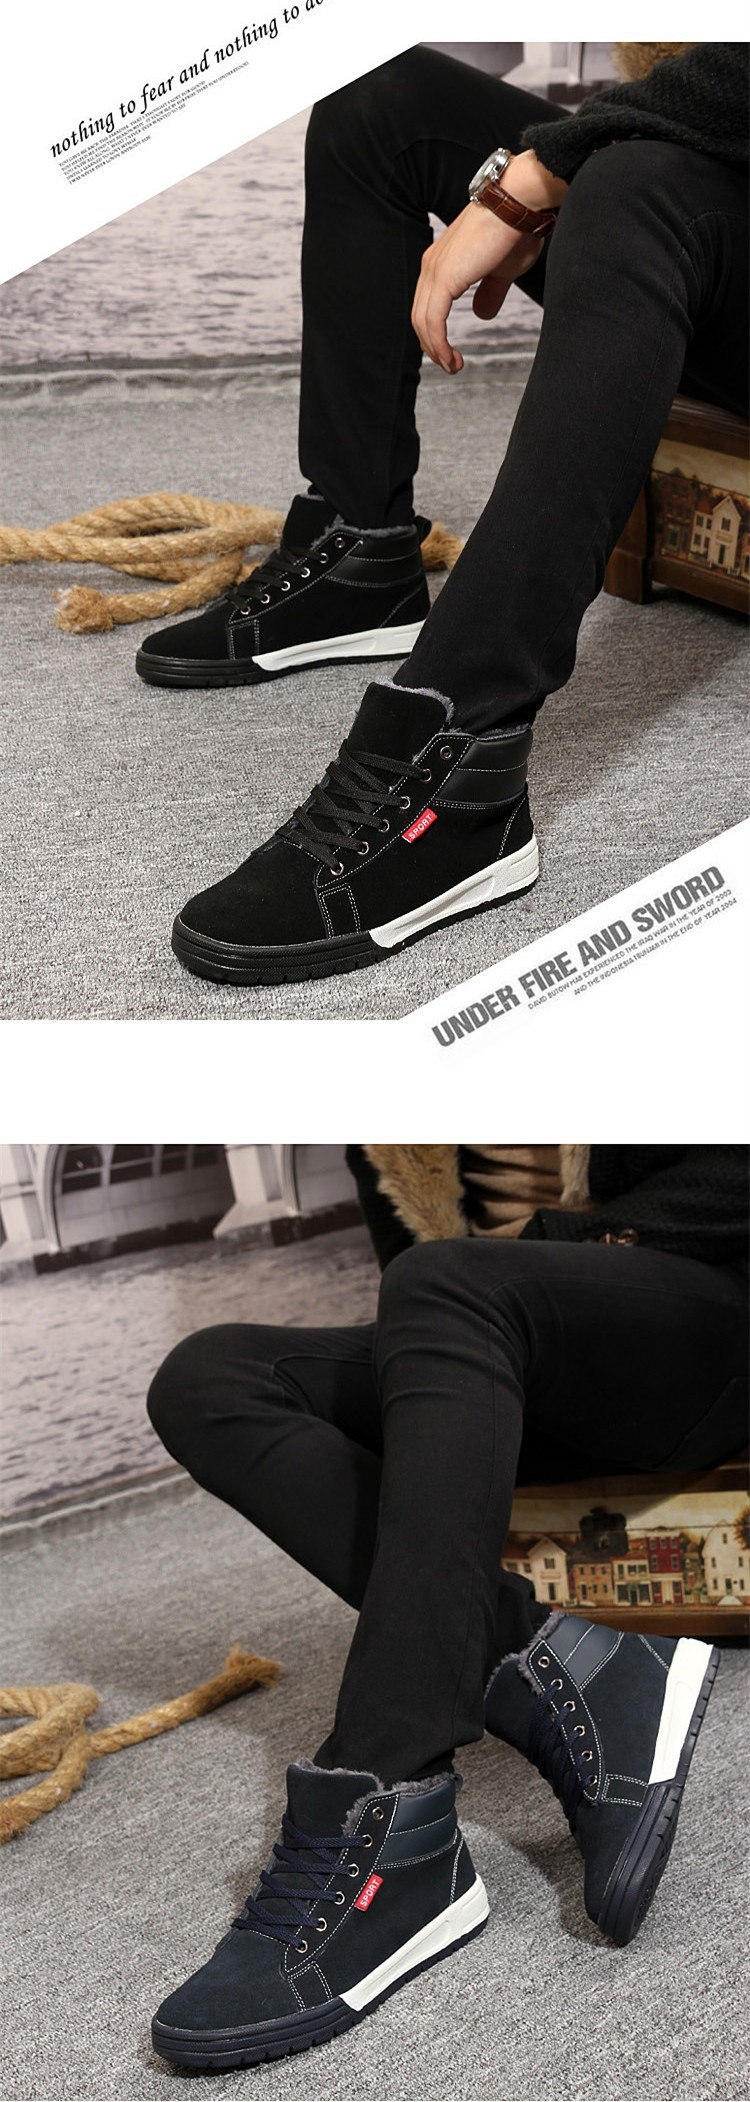 winter shoes (11)